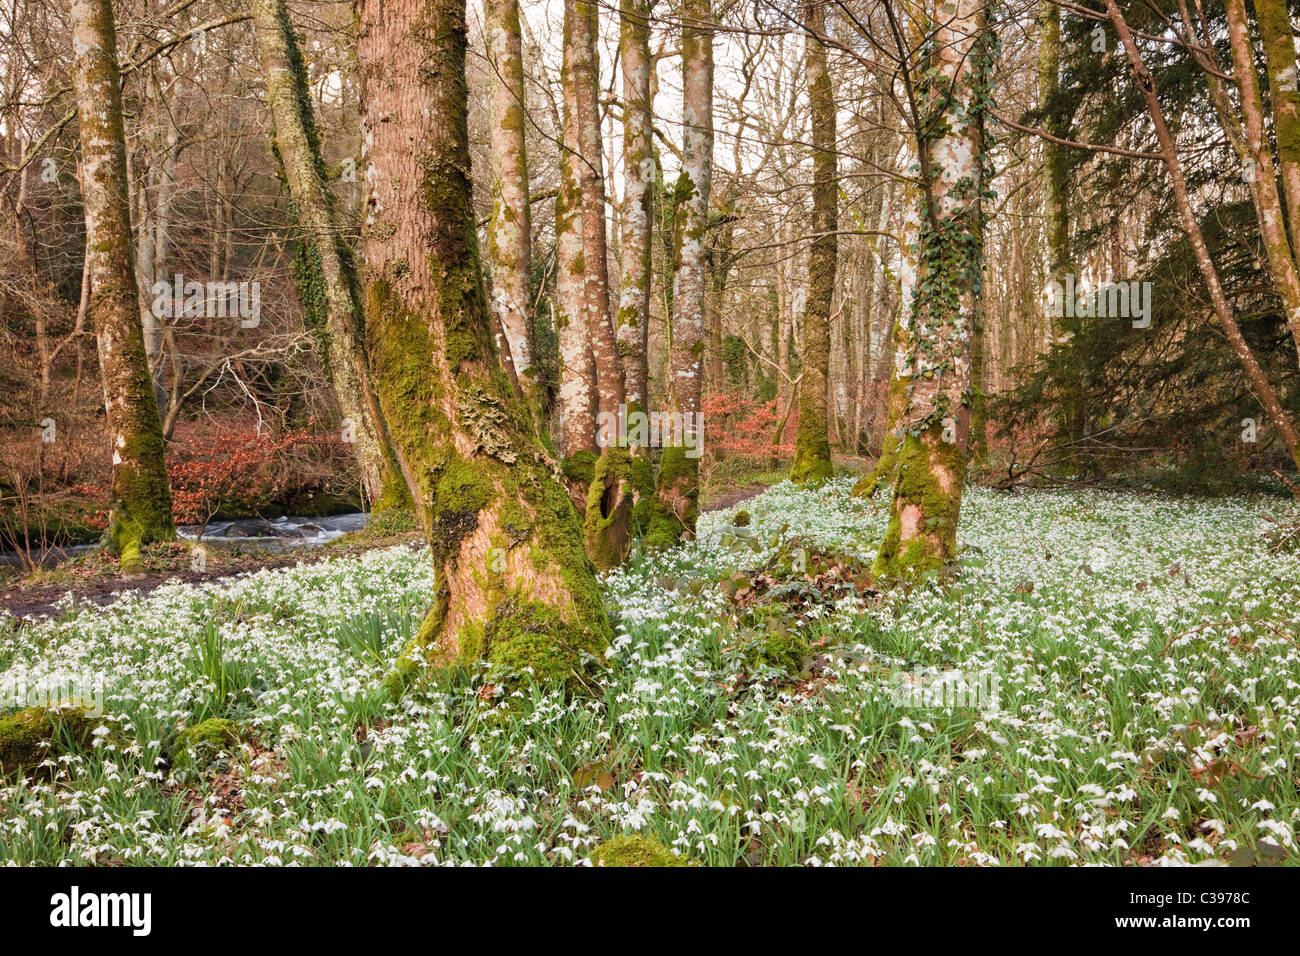 Wild Snowdrops (Galanthus nivalis) growing in woodland beside Afon Dwyfor River in late winter. Gwynedd, North Wales, - Stock Image